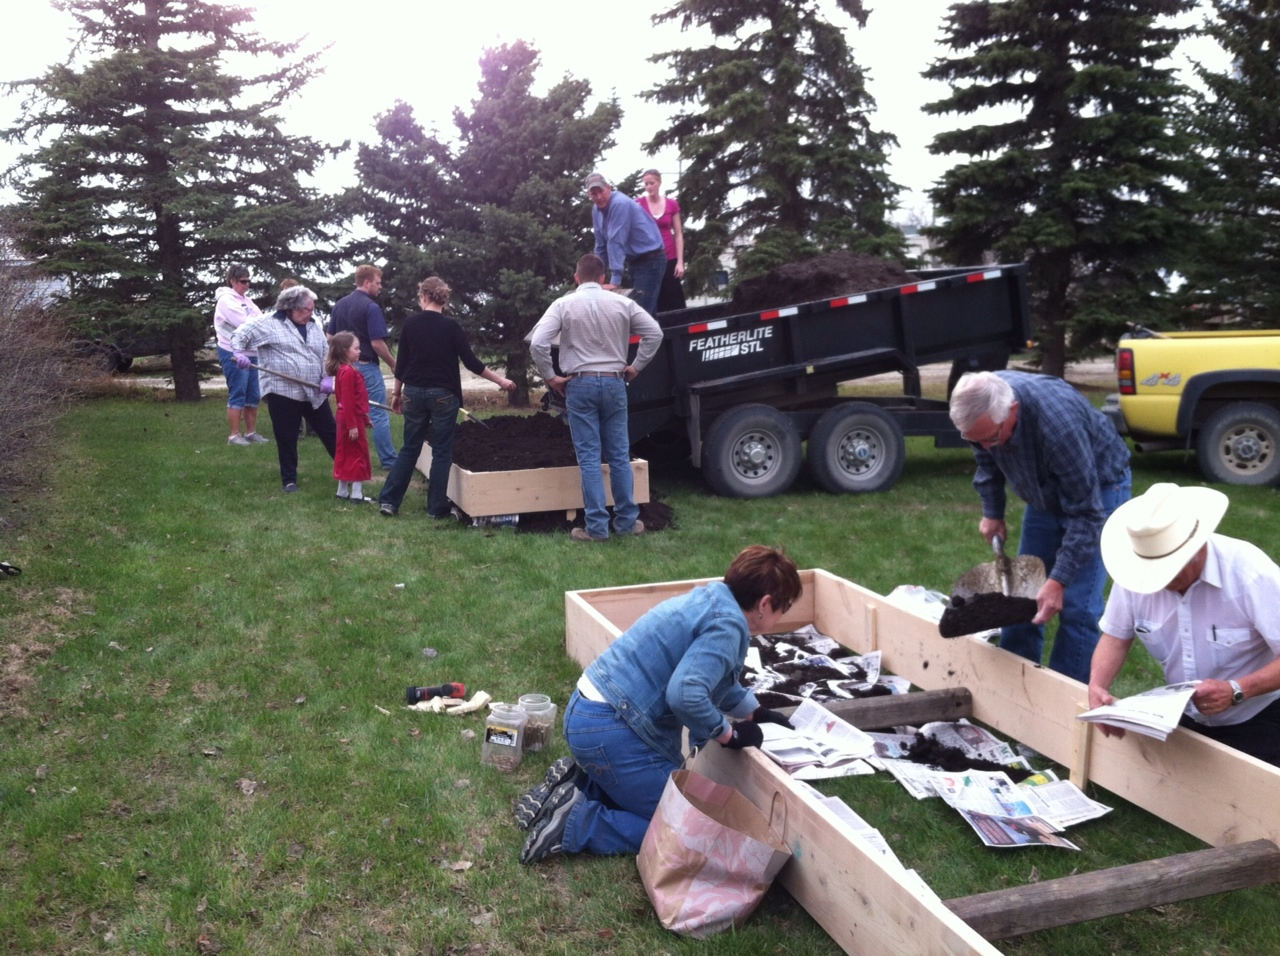 The people came together to build garden boxes out behind the church.